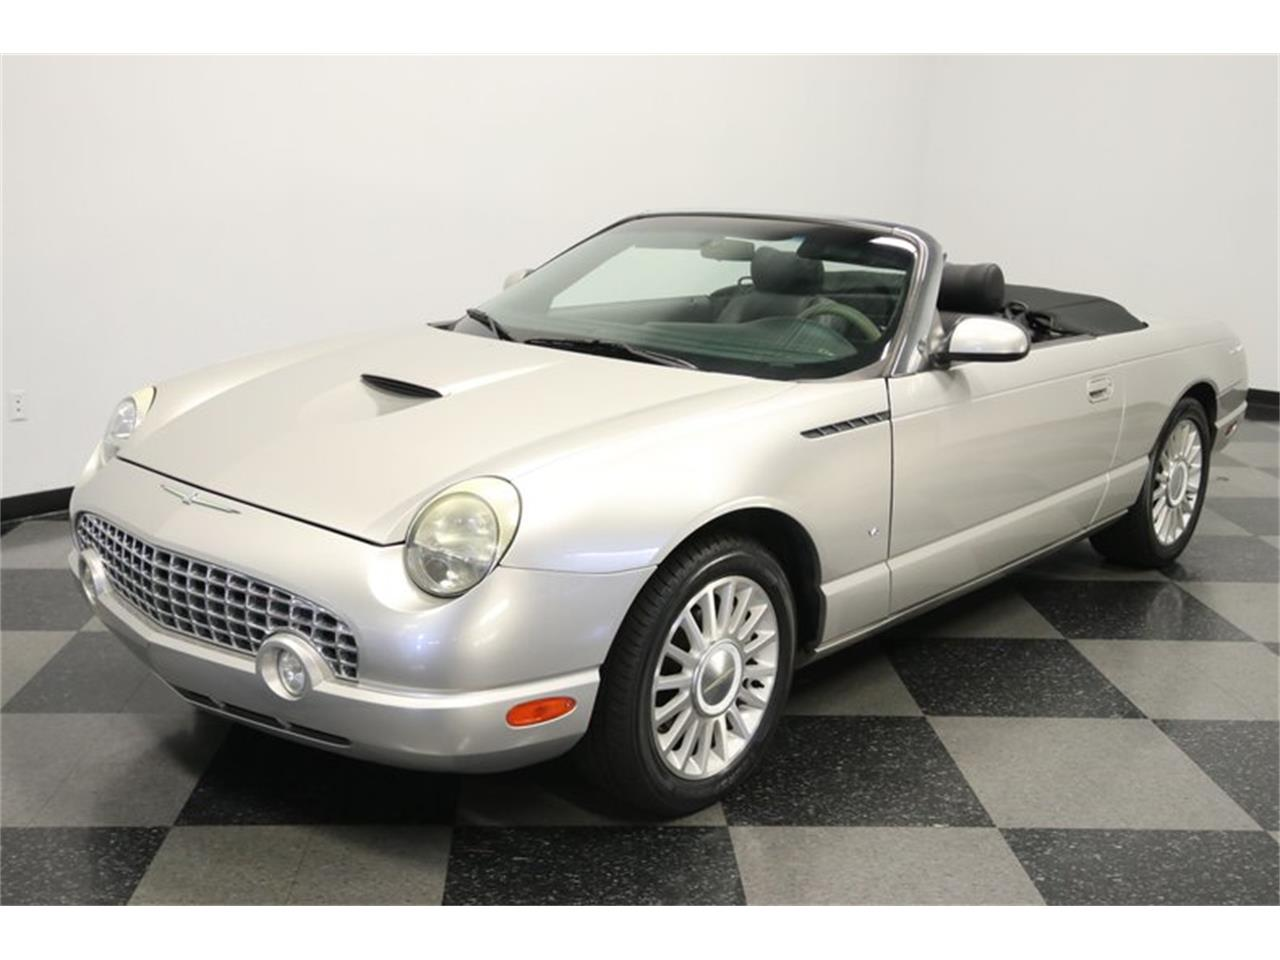 2004 Ford Thunderbird (CC-1414175) for sale in Lutz, Florida